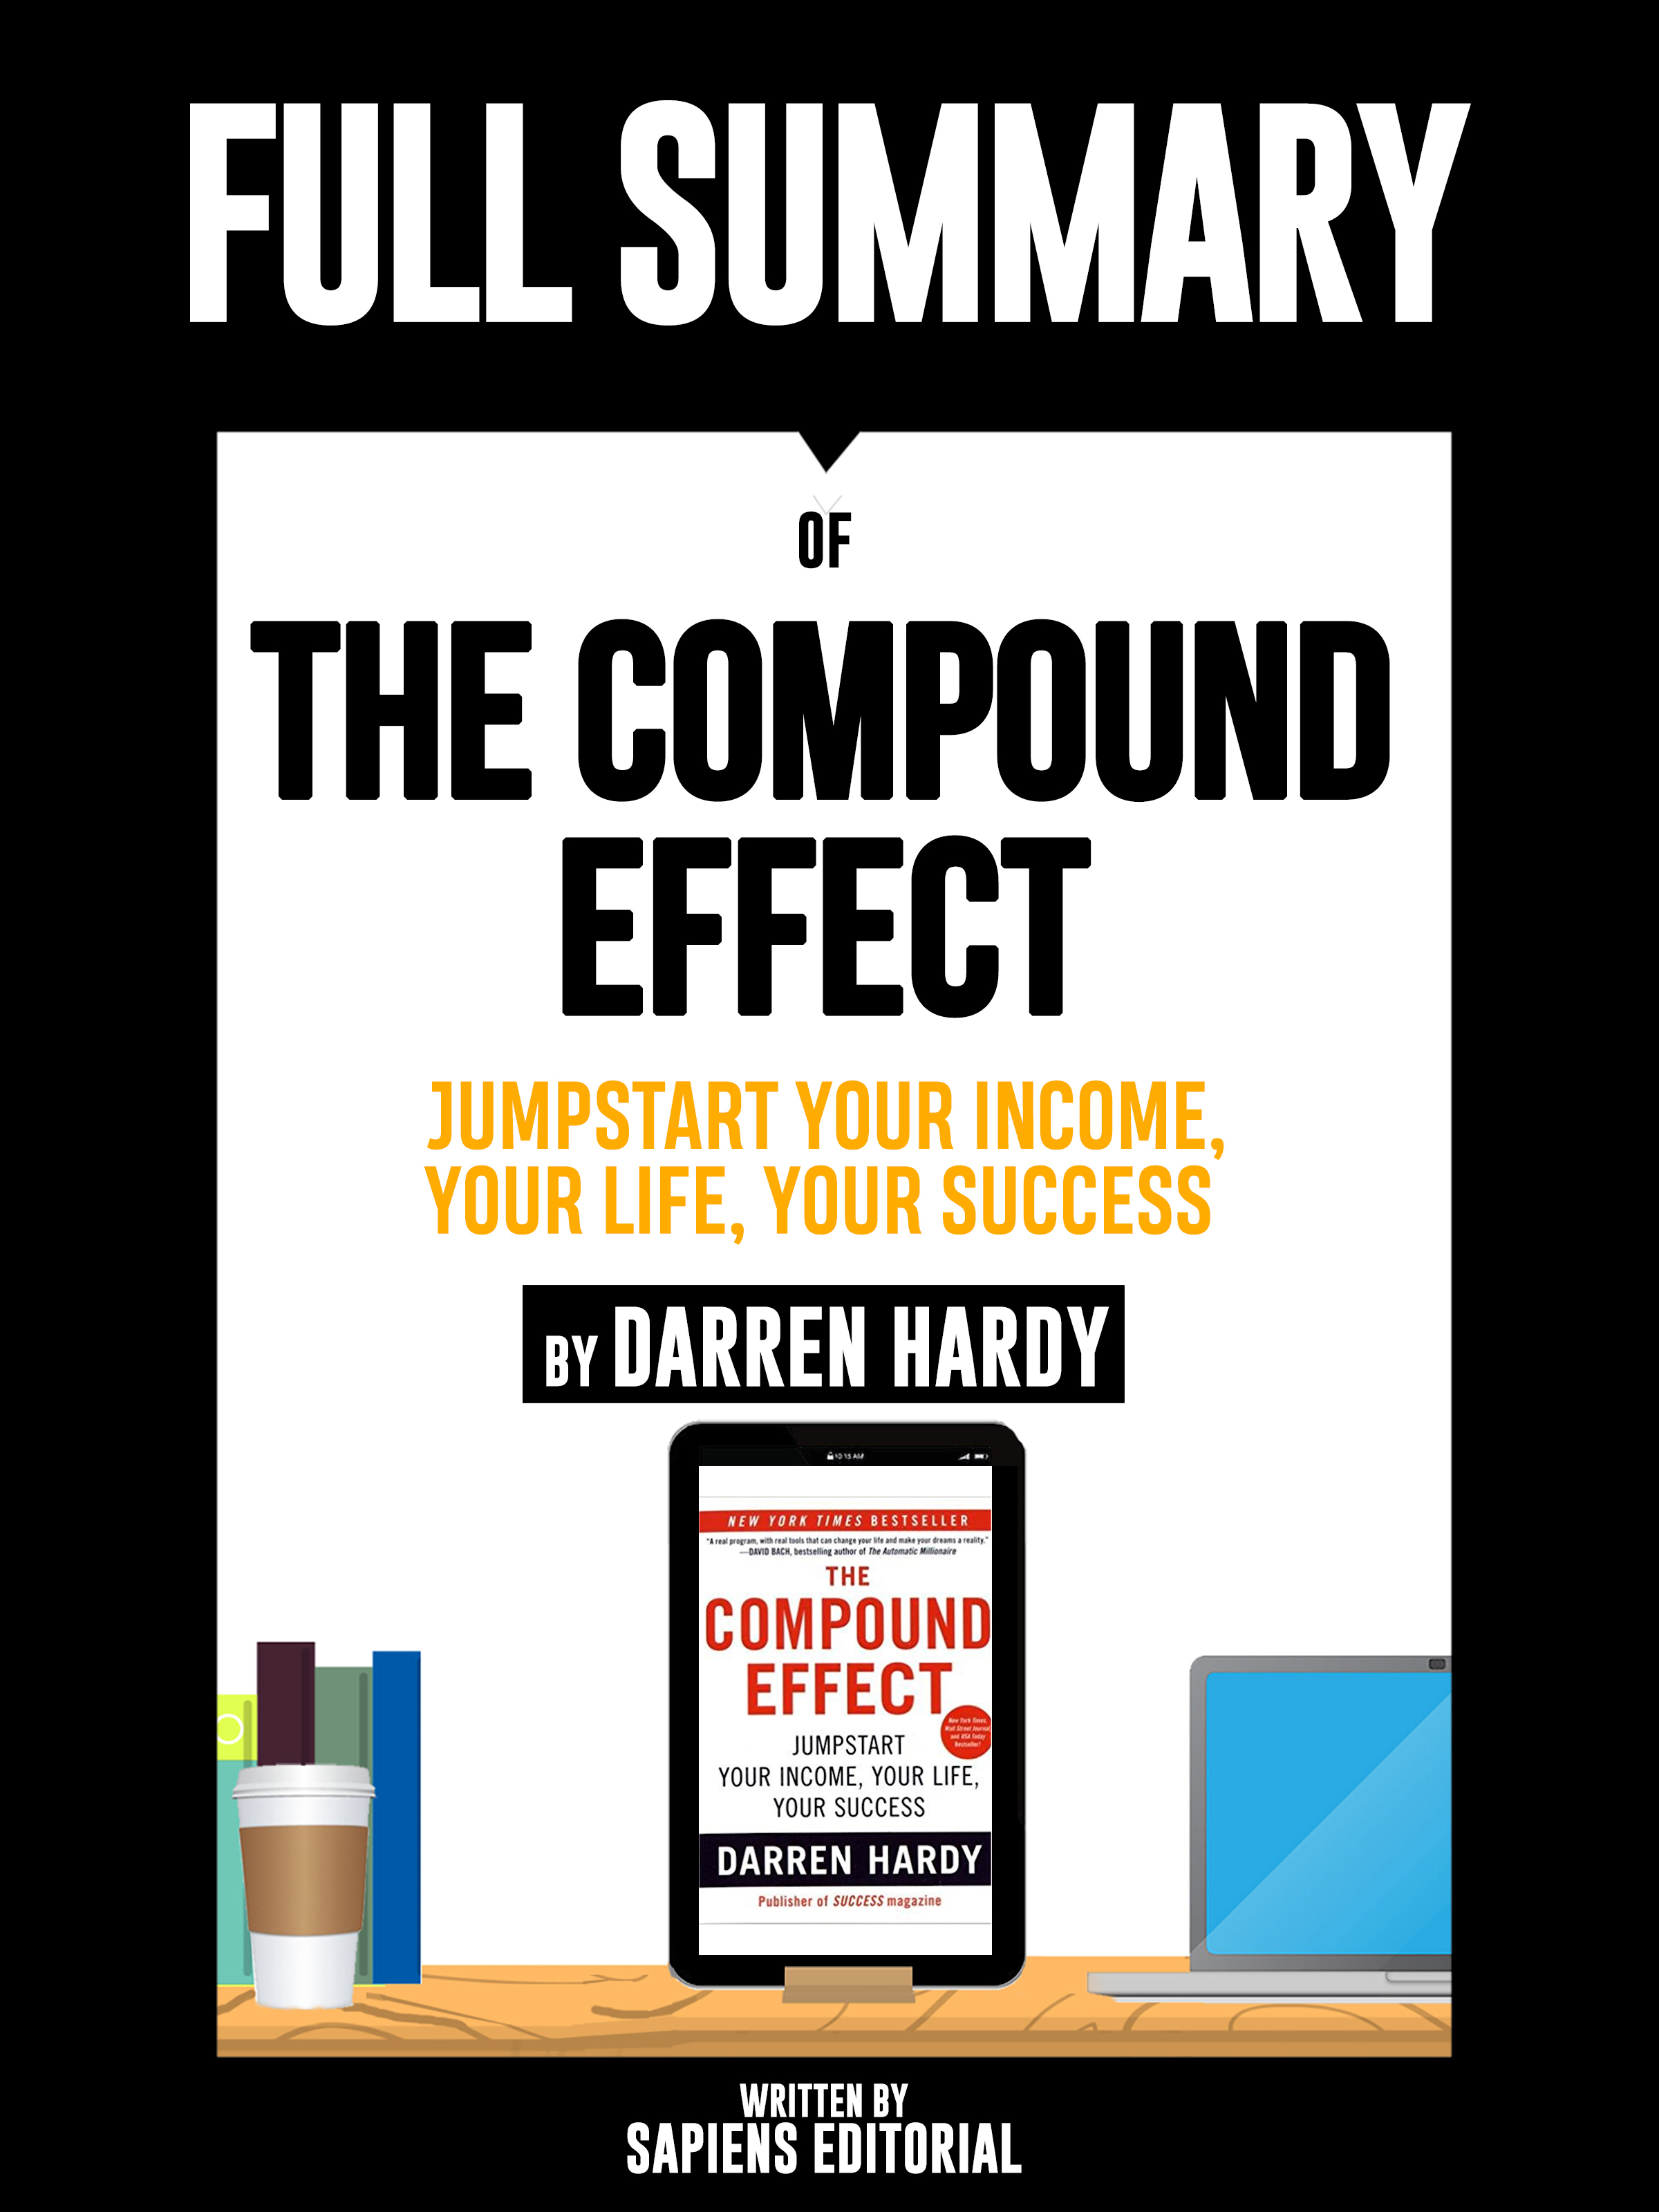 Sapiens Editorial Full Summary Of The Compound Effect: Jumpstart Your Income, Your Life, Your Success - By Darren Hardy degradation of humic acid by by mn iii complex compound